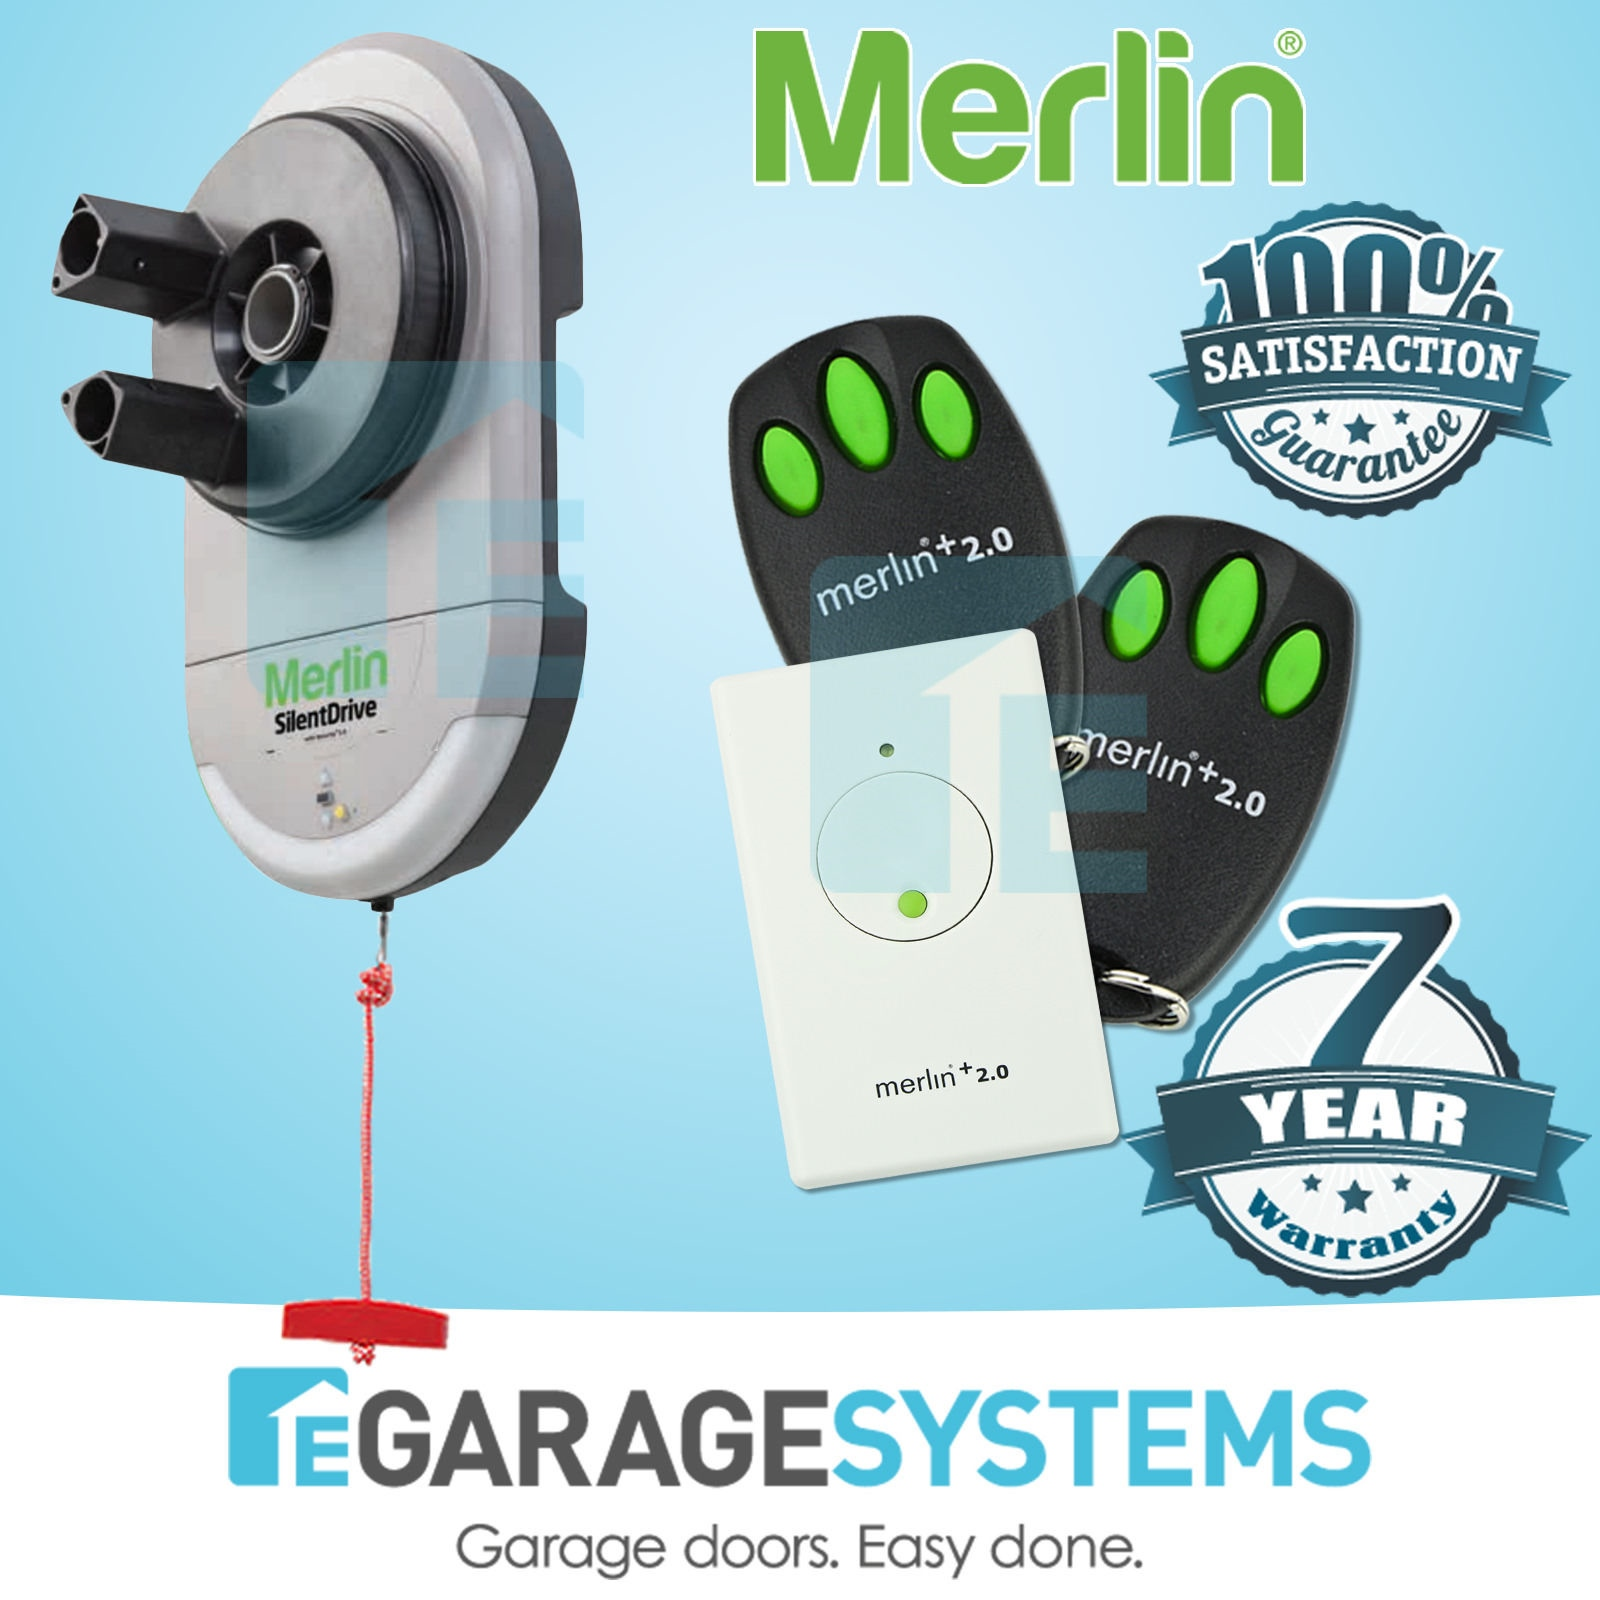 Door opener garage roller mr850evo merlin chamberlain motor mr850 the new silentdrive pro has brighter led lighting quieter operation and now includes 2 x premium handheld remotes the powerful and fast dc motor is quiet publicscrutiny Images